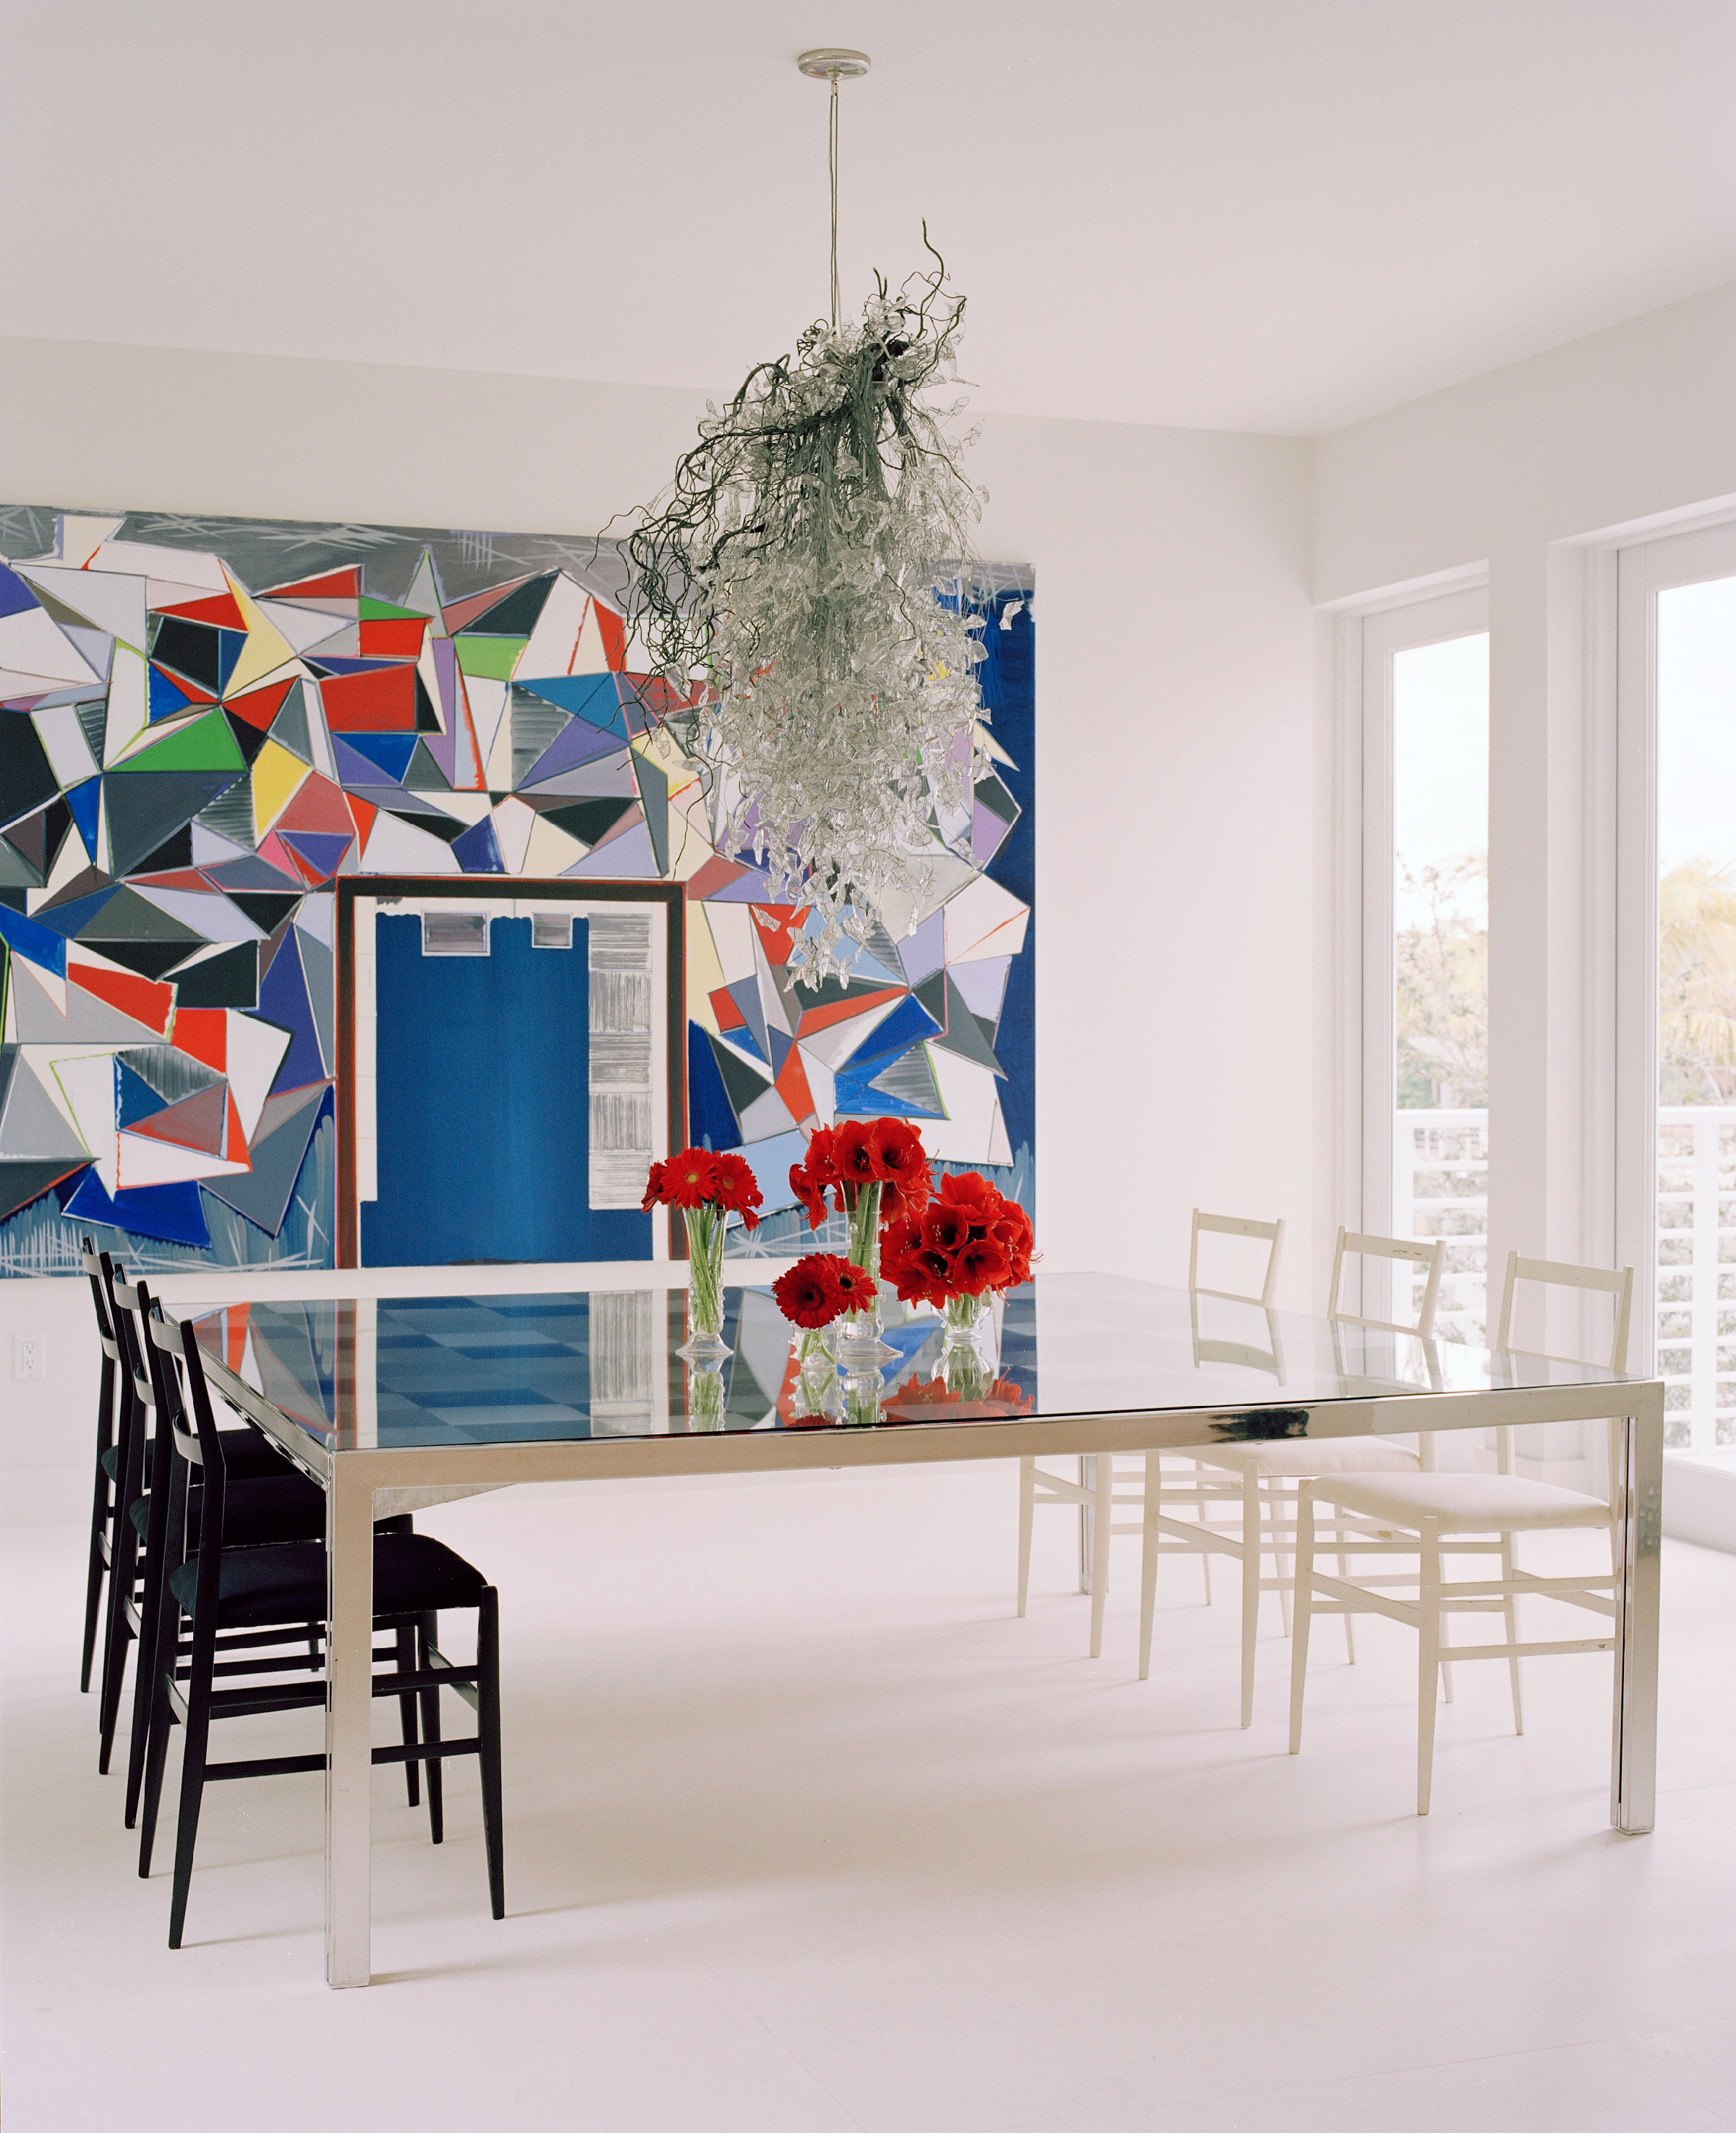 In The Spare And Elegant White Backdrop Of The Dining Room, The Dynamic  Geometry Of A Large Scale Painting By German Artist Thomas Scheibtz And A  ...